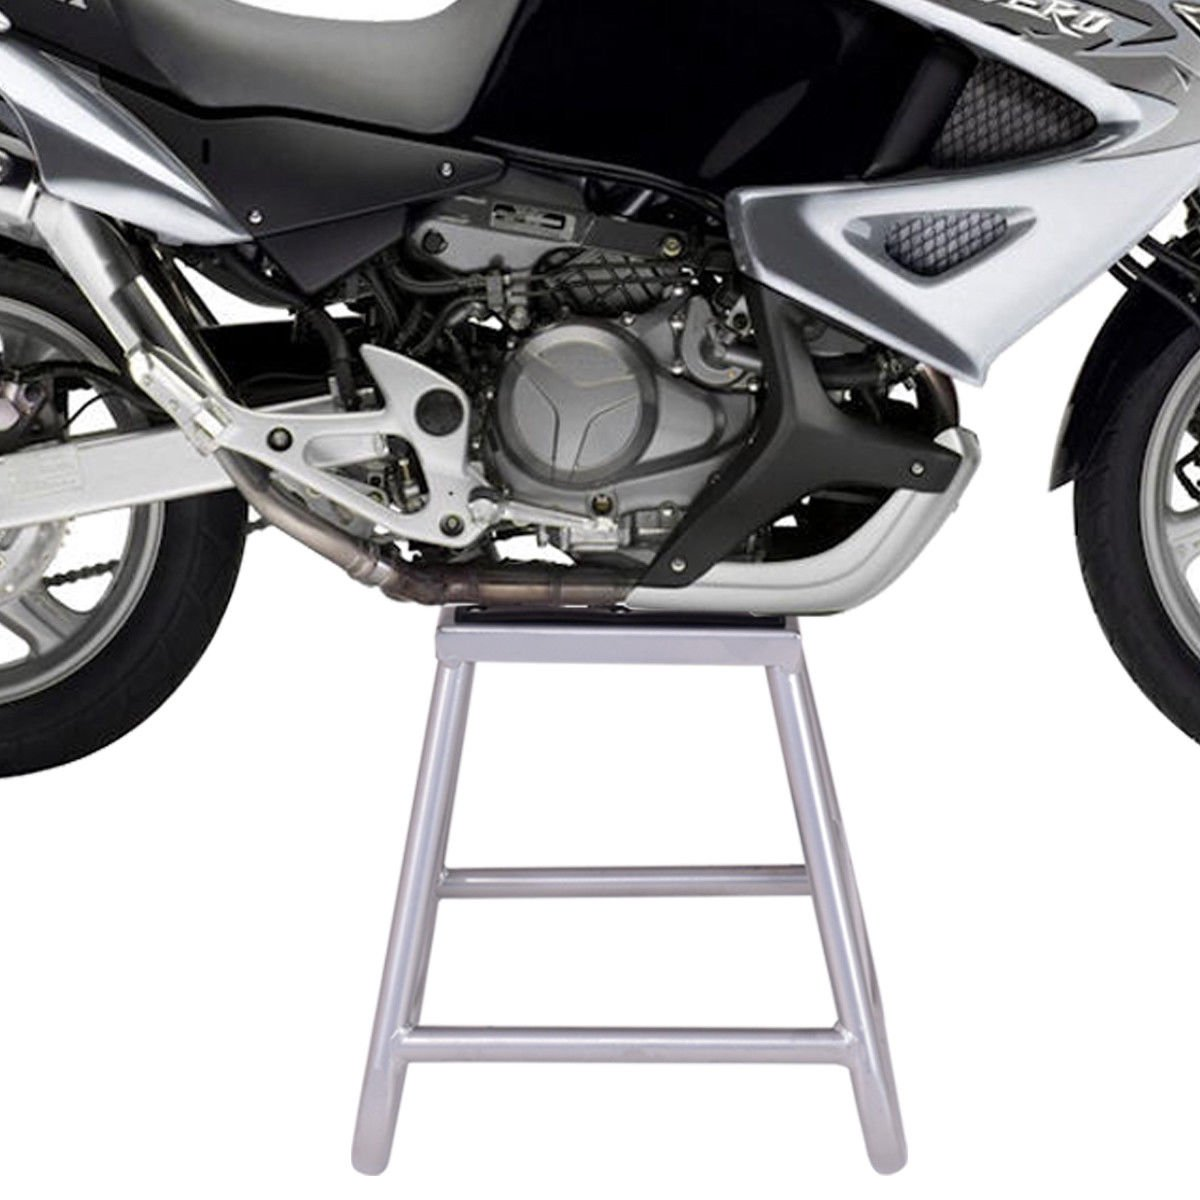 Goplus Motorcycle Motocross Dirt Bike Panel Stand Hoist Maintenance Lift Jack 1000LB Capacity (10''× 10'' Without Removable Oil Pan) by Goplus (Image #2)